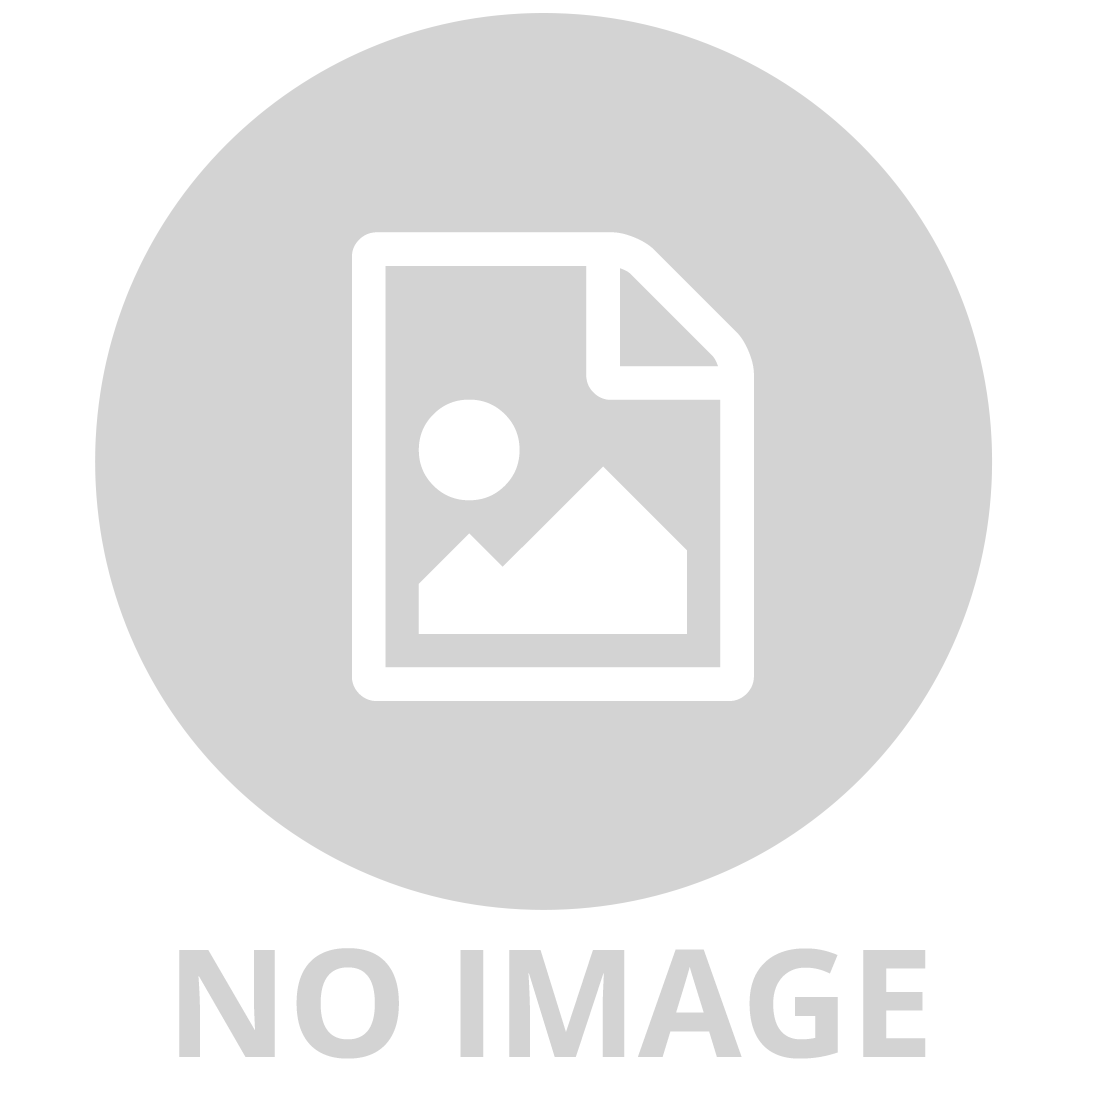 3 STOREY WOODEN DOLLS HOUSE